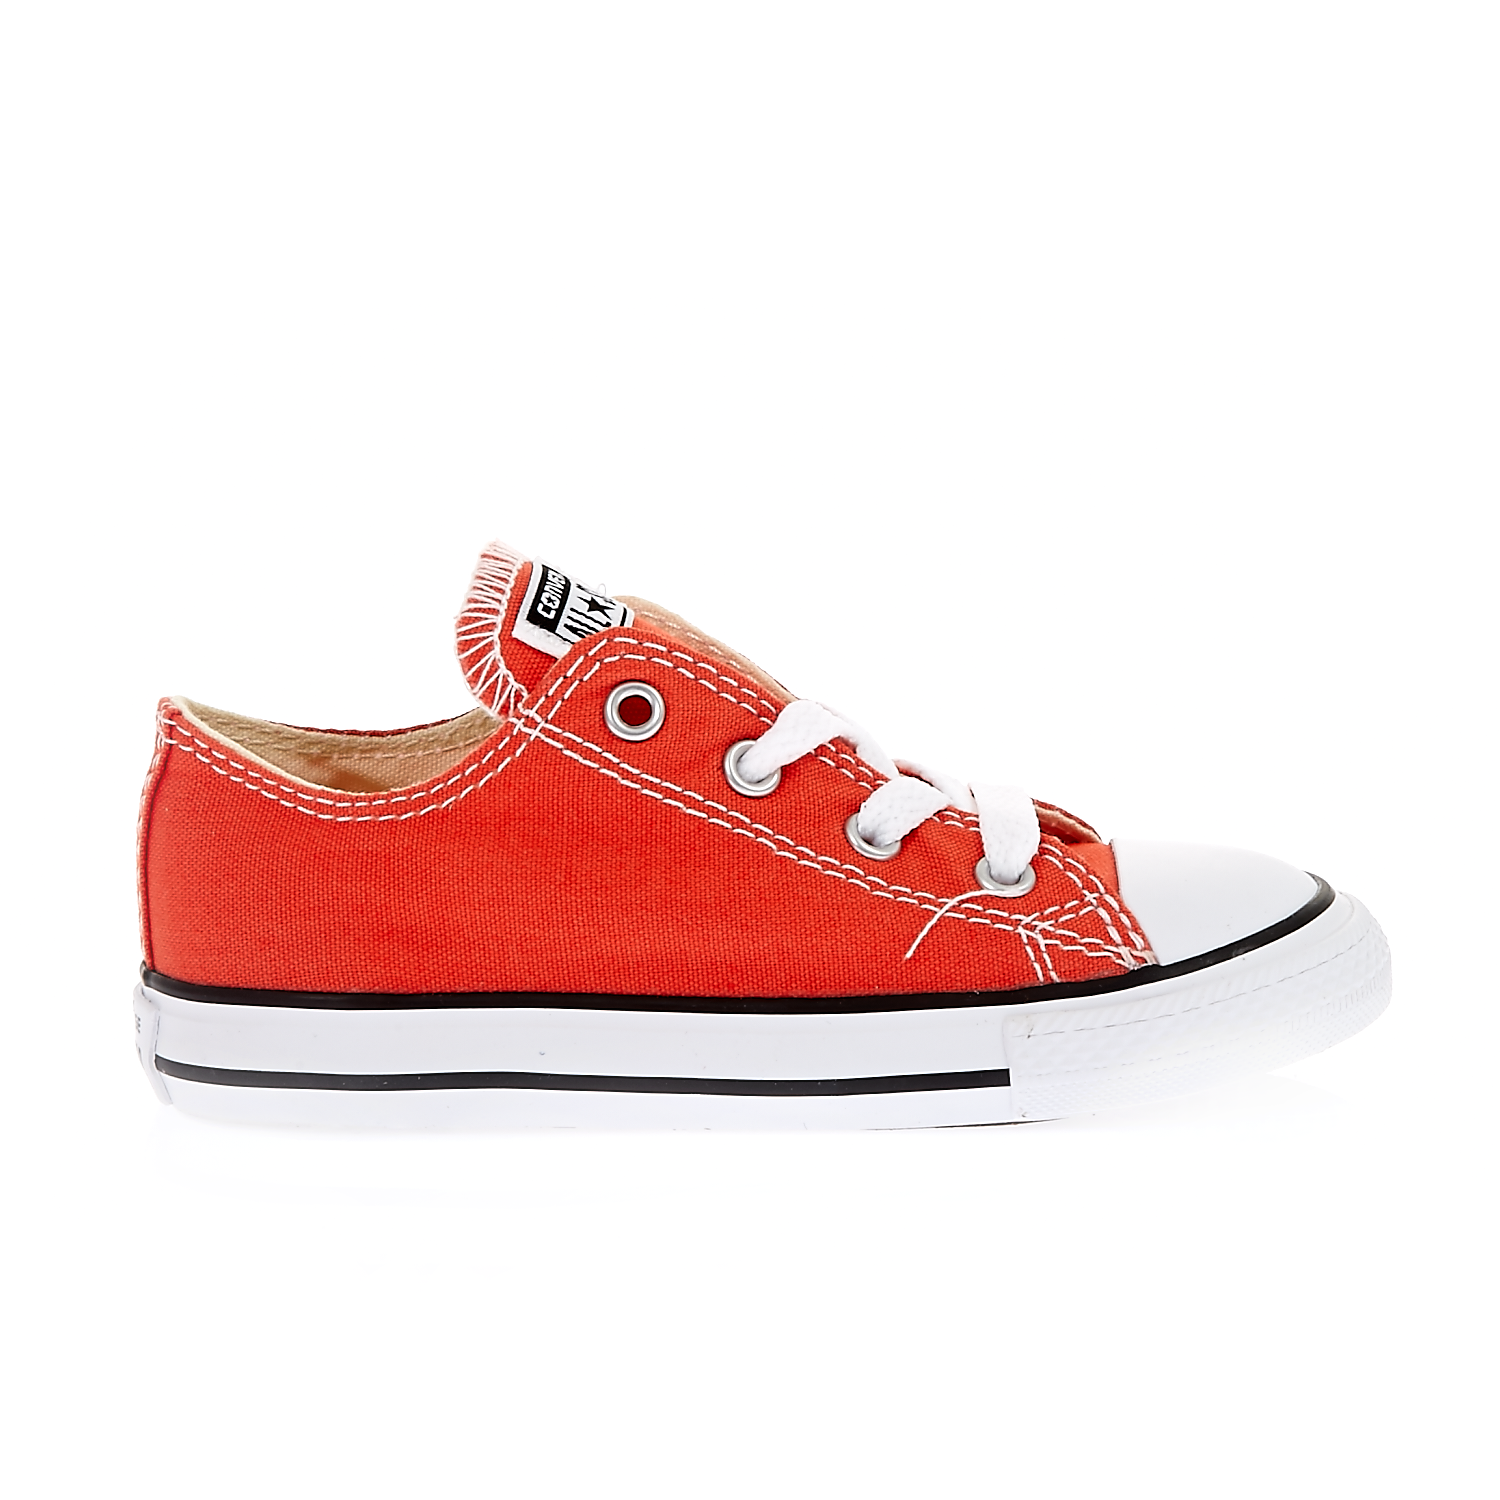 CONVERSE – Βρεφικά παπούτσια Chuck Taylor All Star Ox κεραμιδί-πορτοκαλί